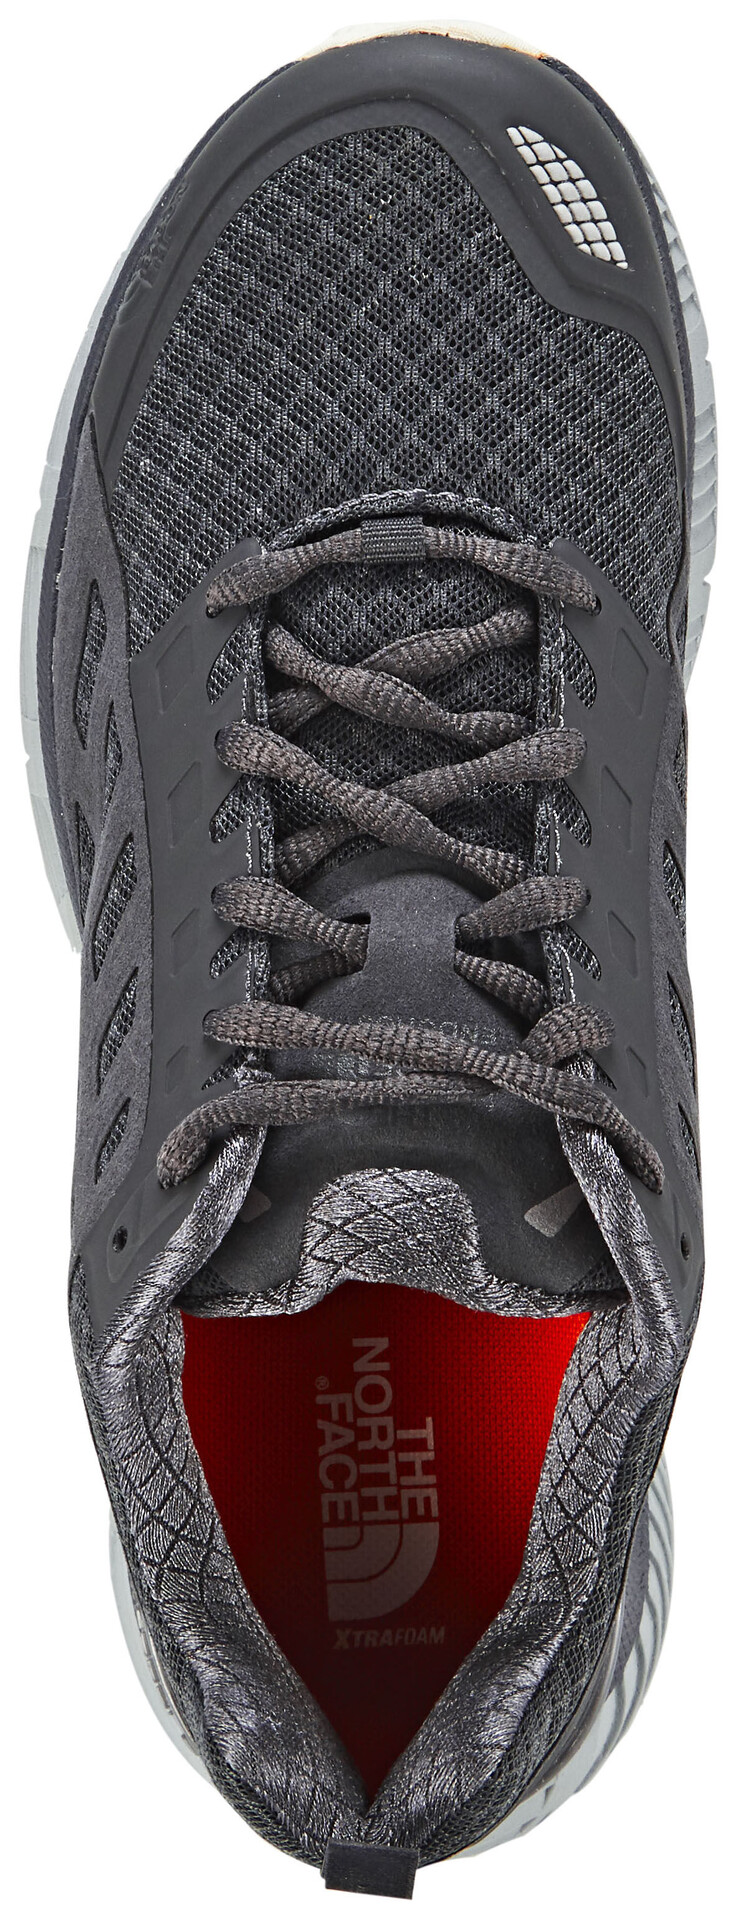 Sur Chaussures Campz Endurus Face North Gris Tr Femme The R4wvH70